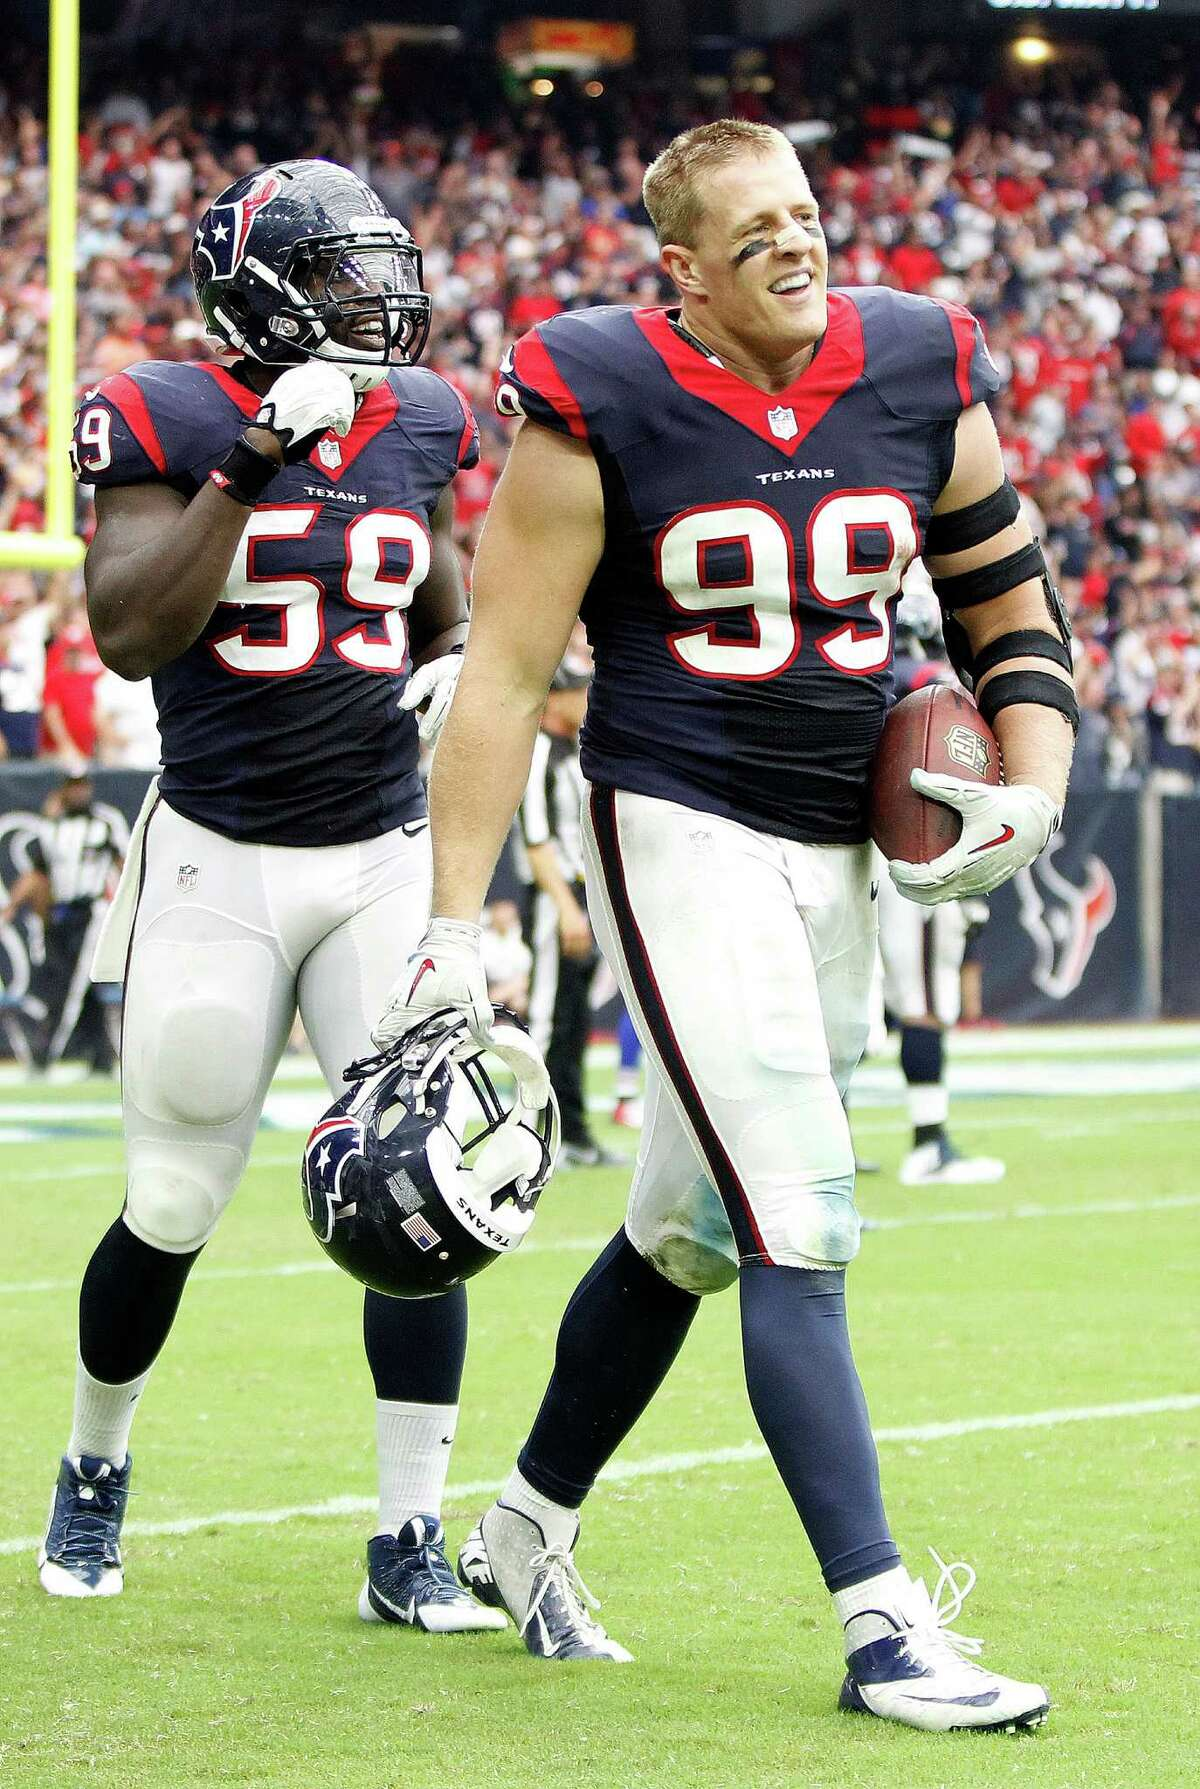 Former Defensive Player of the Year J.J. Watt (99) comes off the field with his interception ball during the third quarter of the Texans victory over the Bills last week. ( Karen Warren / Houston Chronicle )